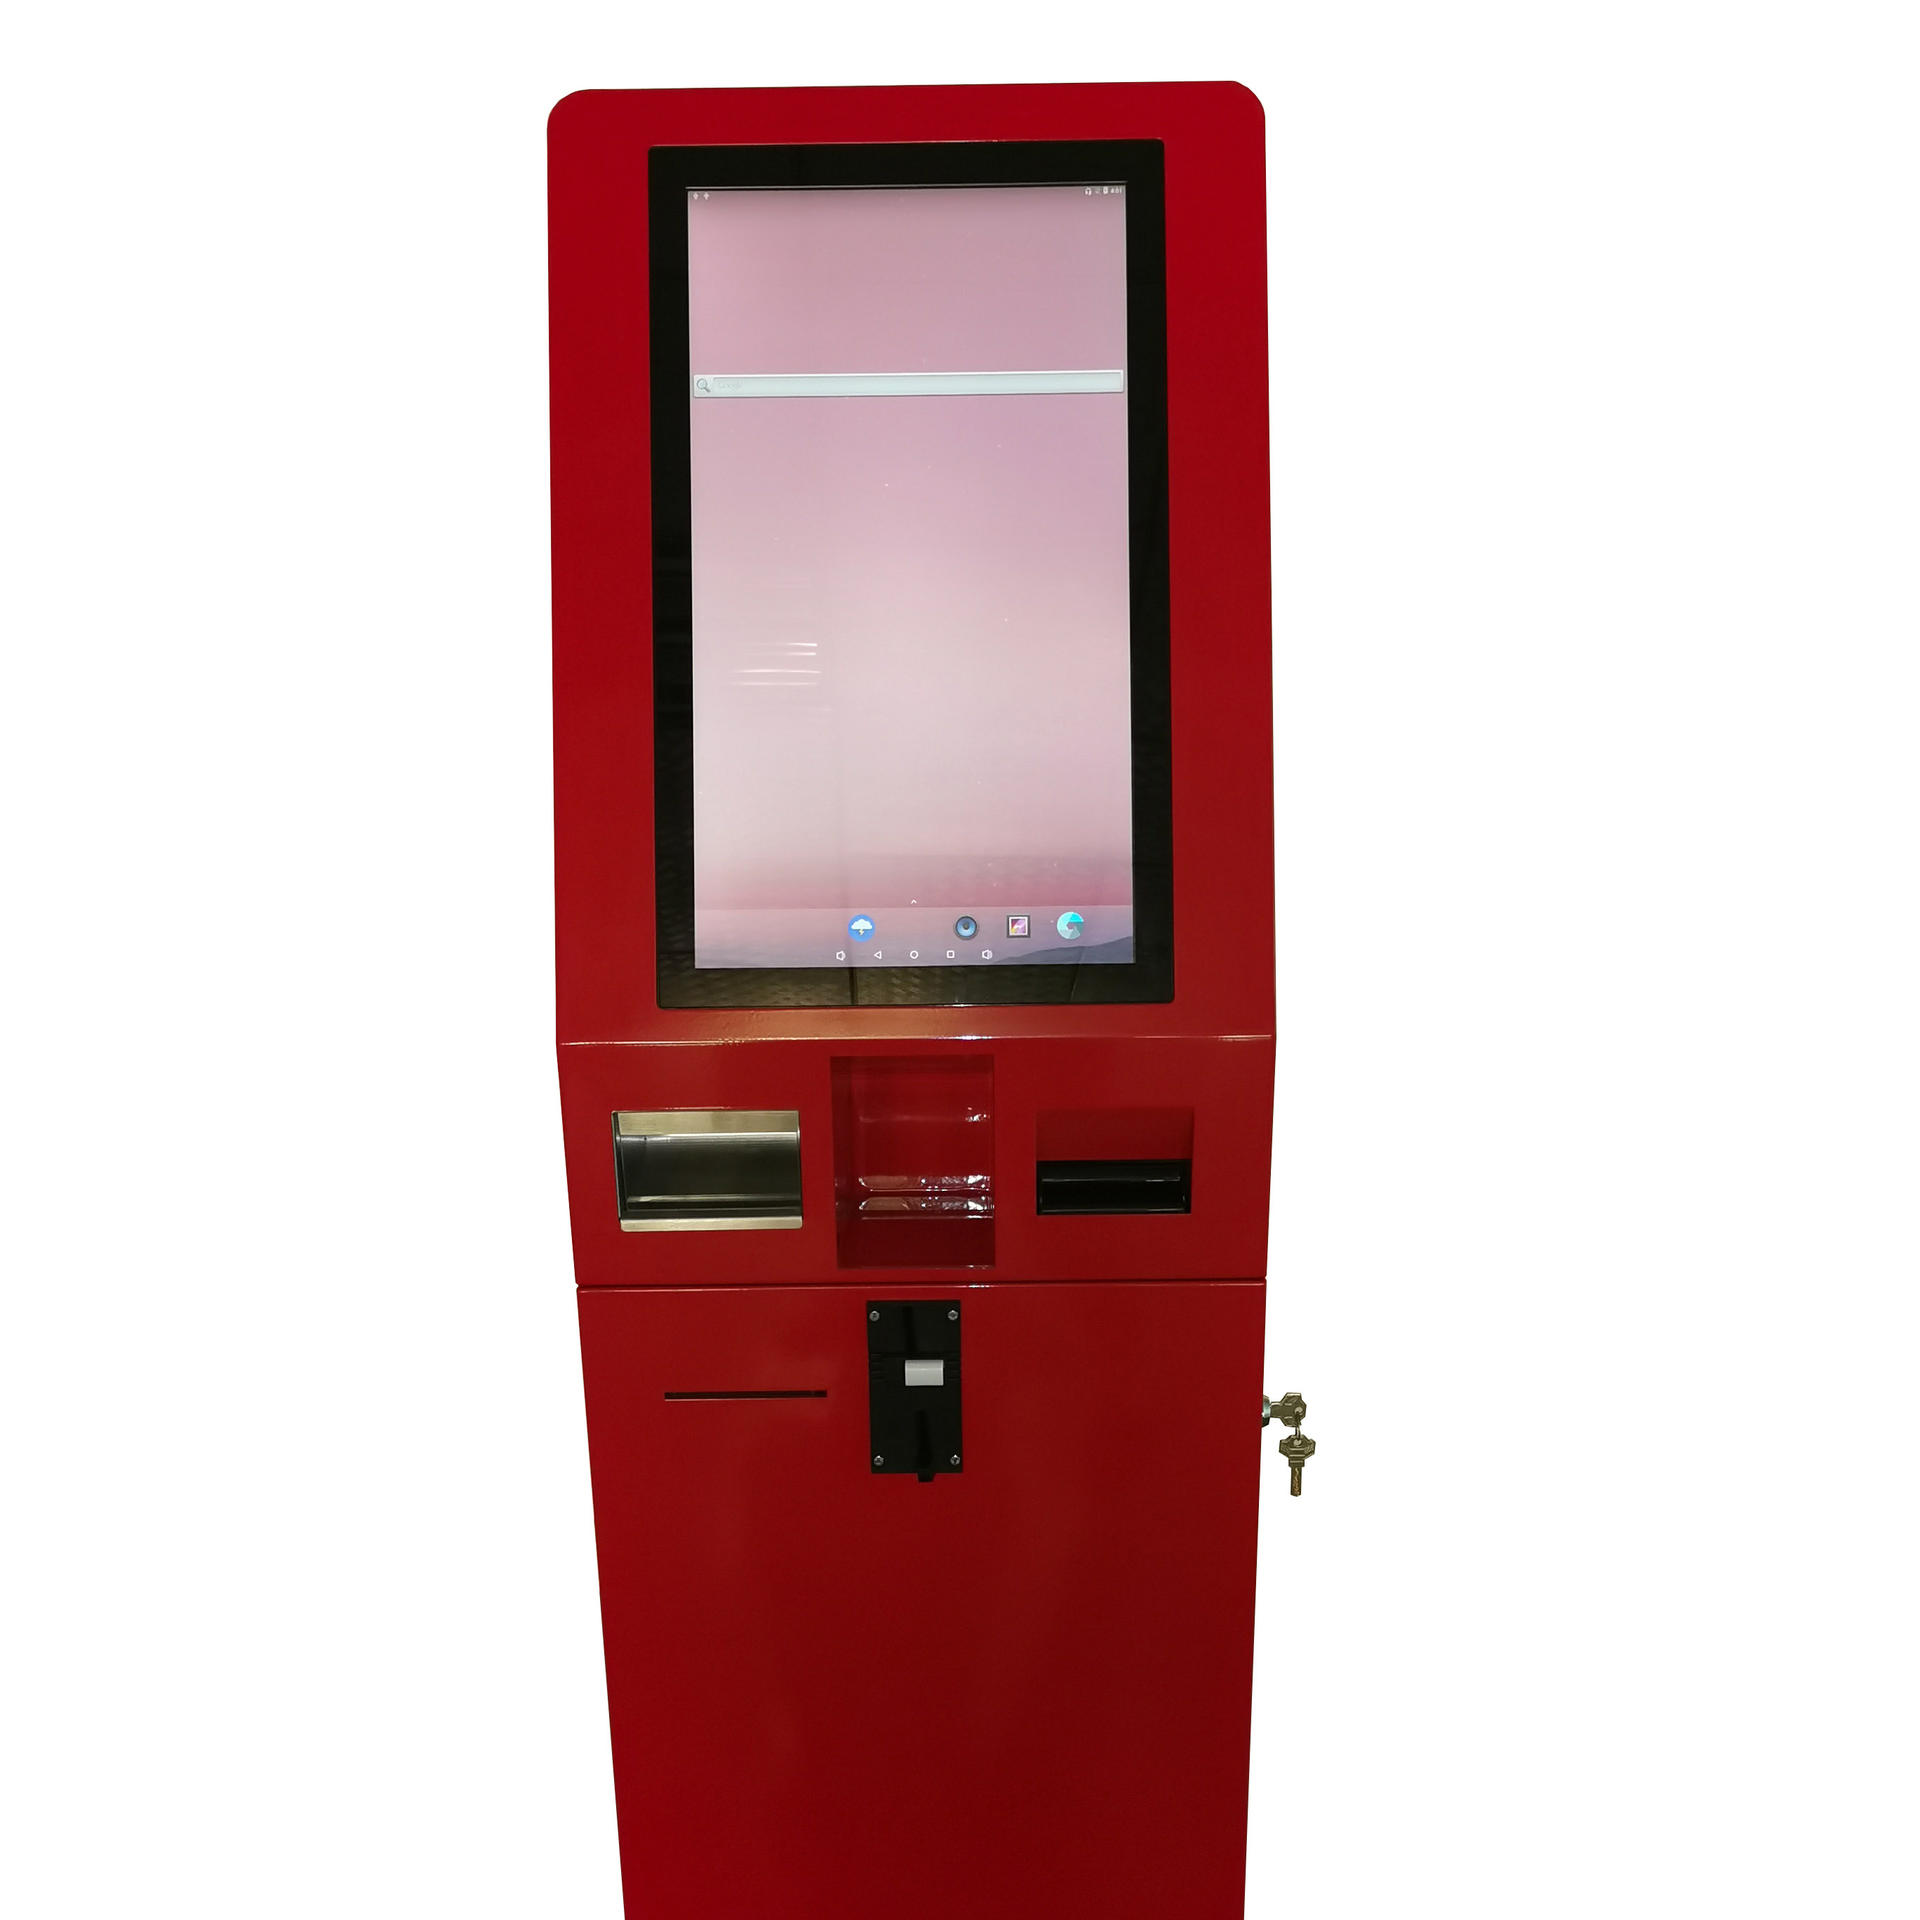 Smart Touch screen Self Service Ordering Payment Kiosk With Window/Android System